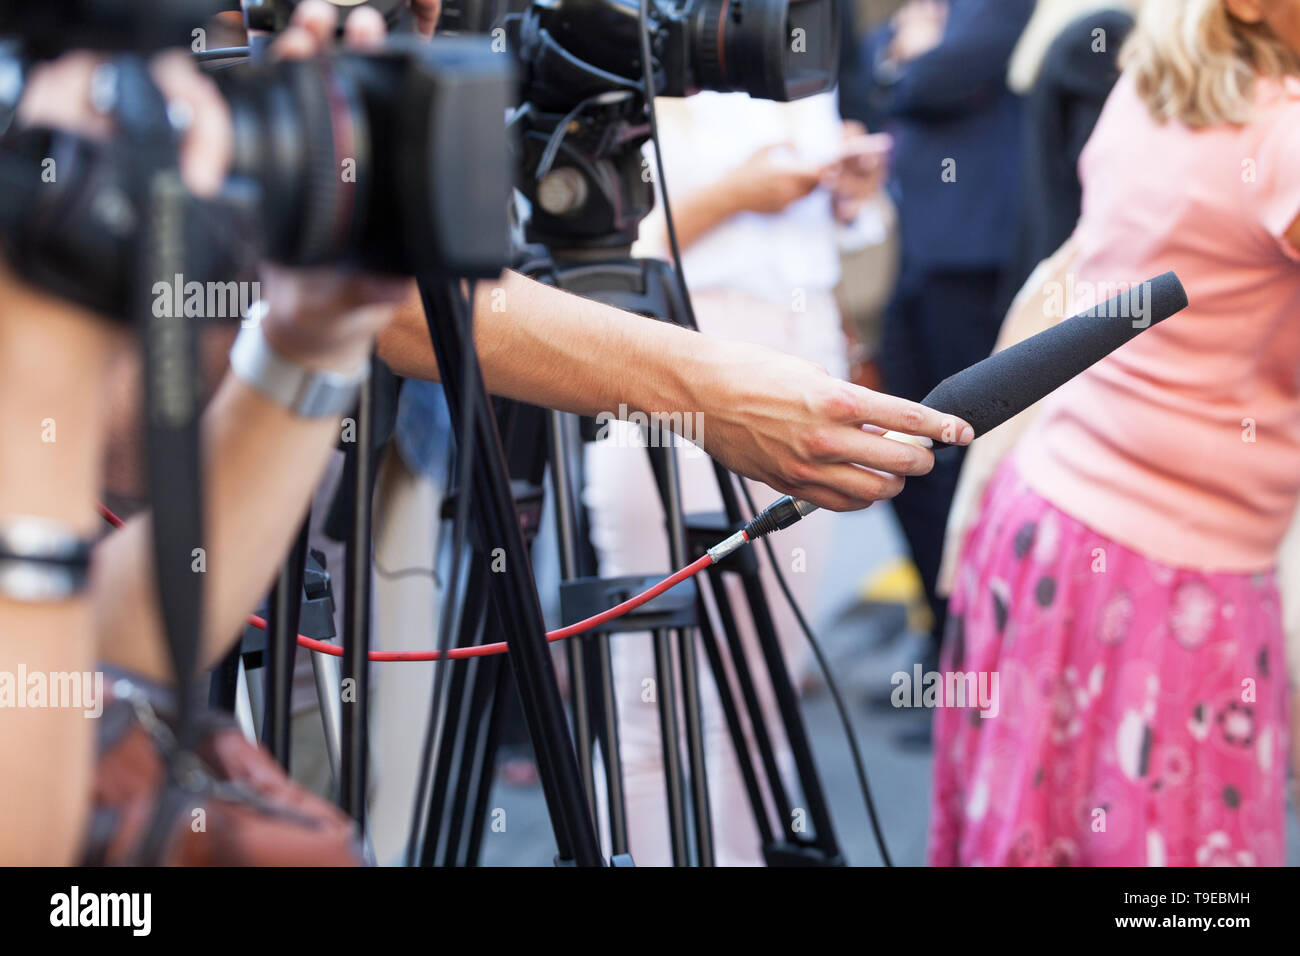 Filming news conference with a video camera - Stock Image